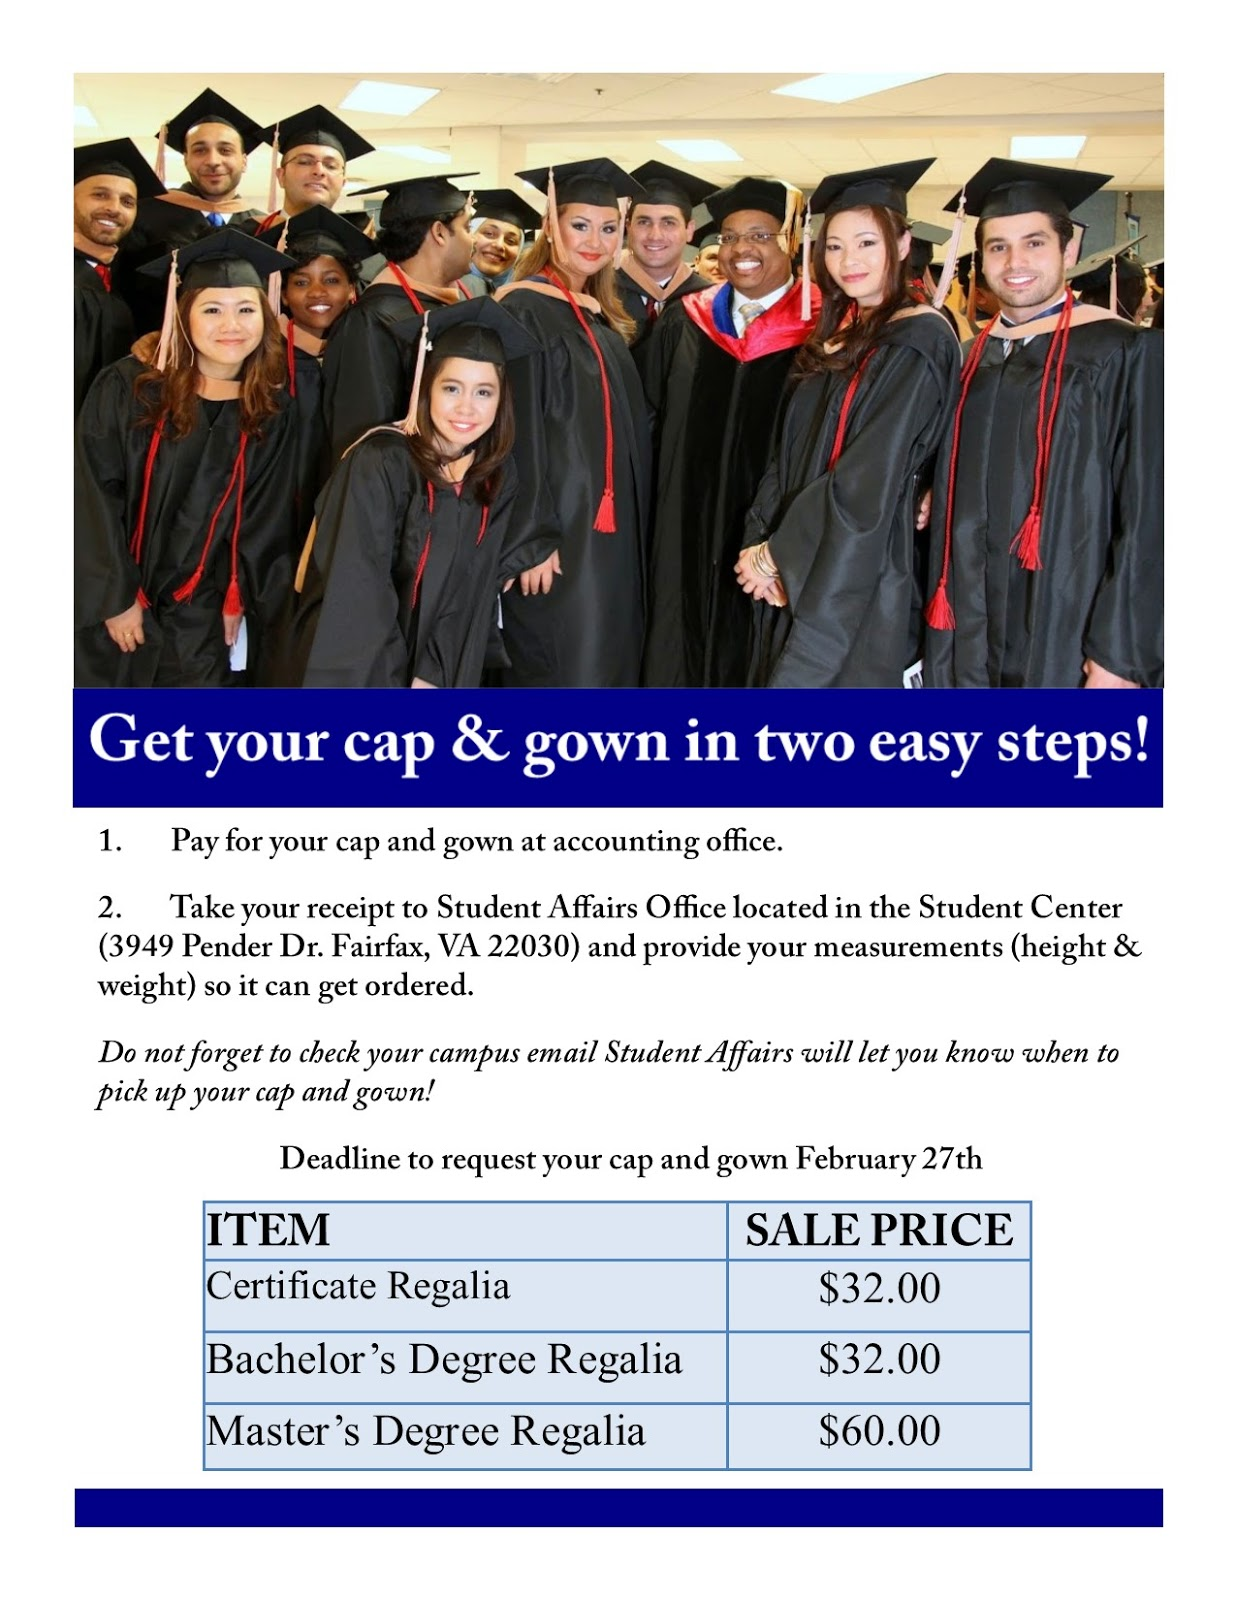 Blogs » Attention Graduates! Caps & Gowns